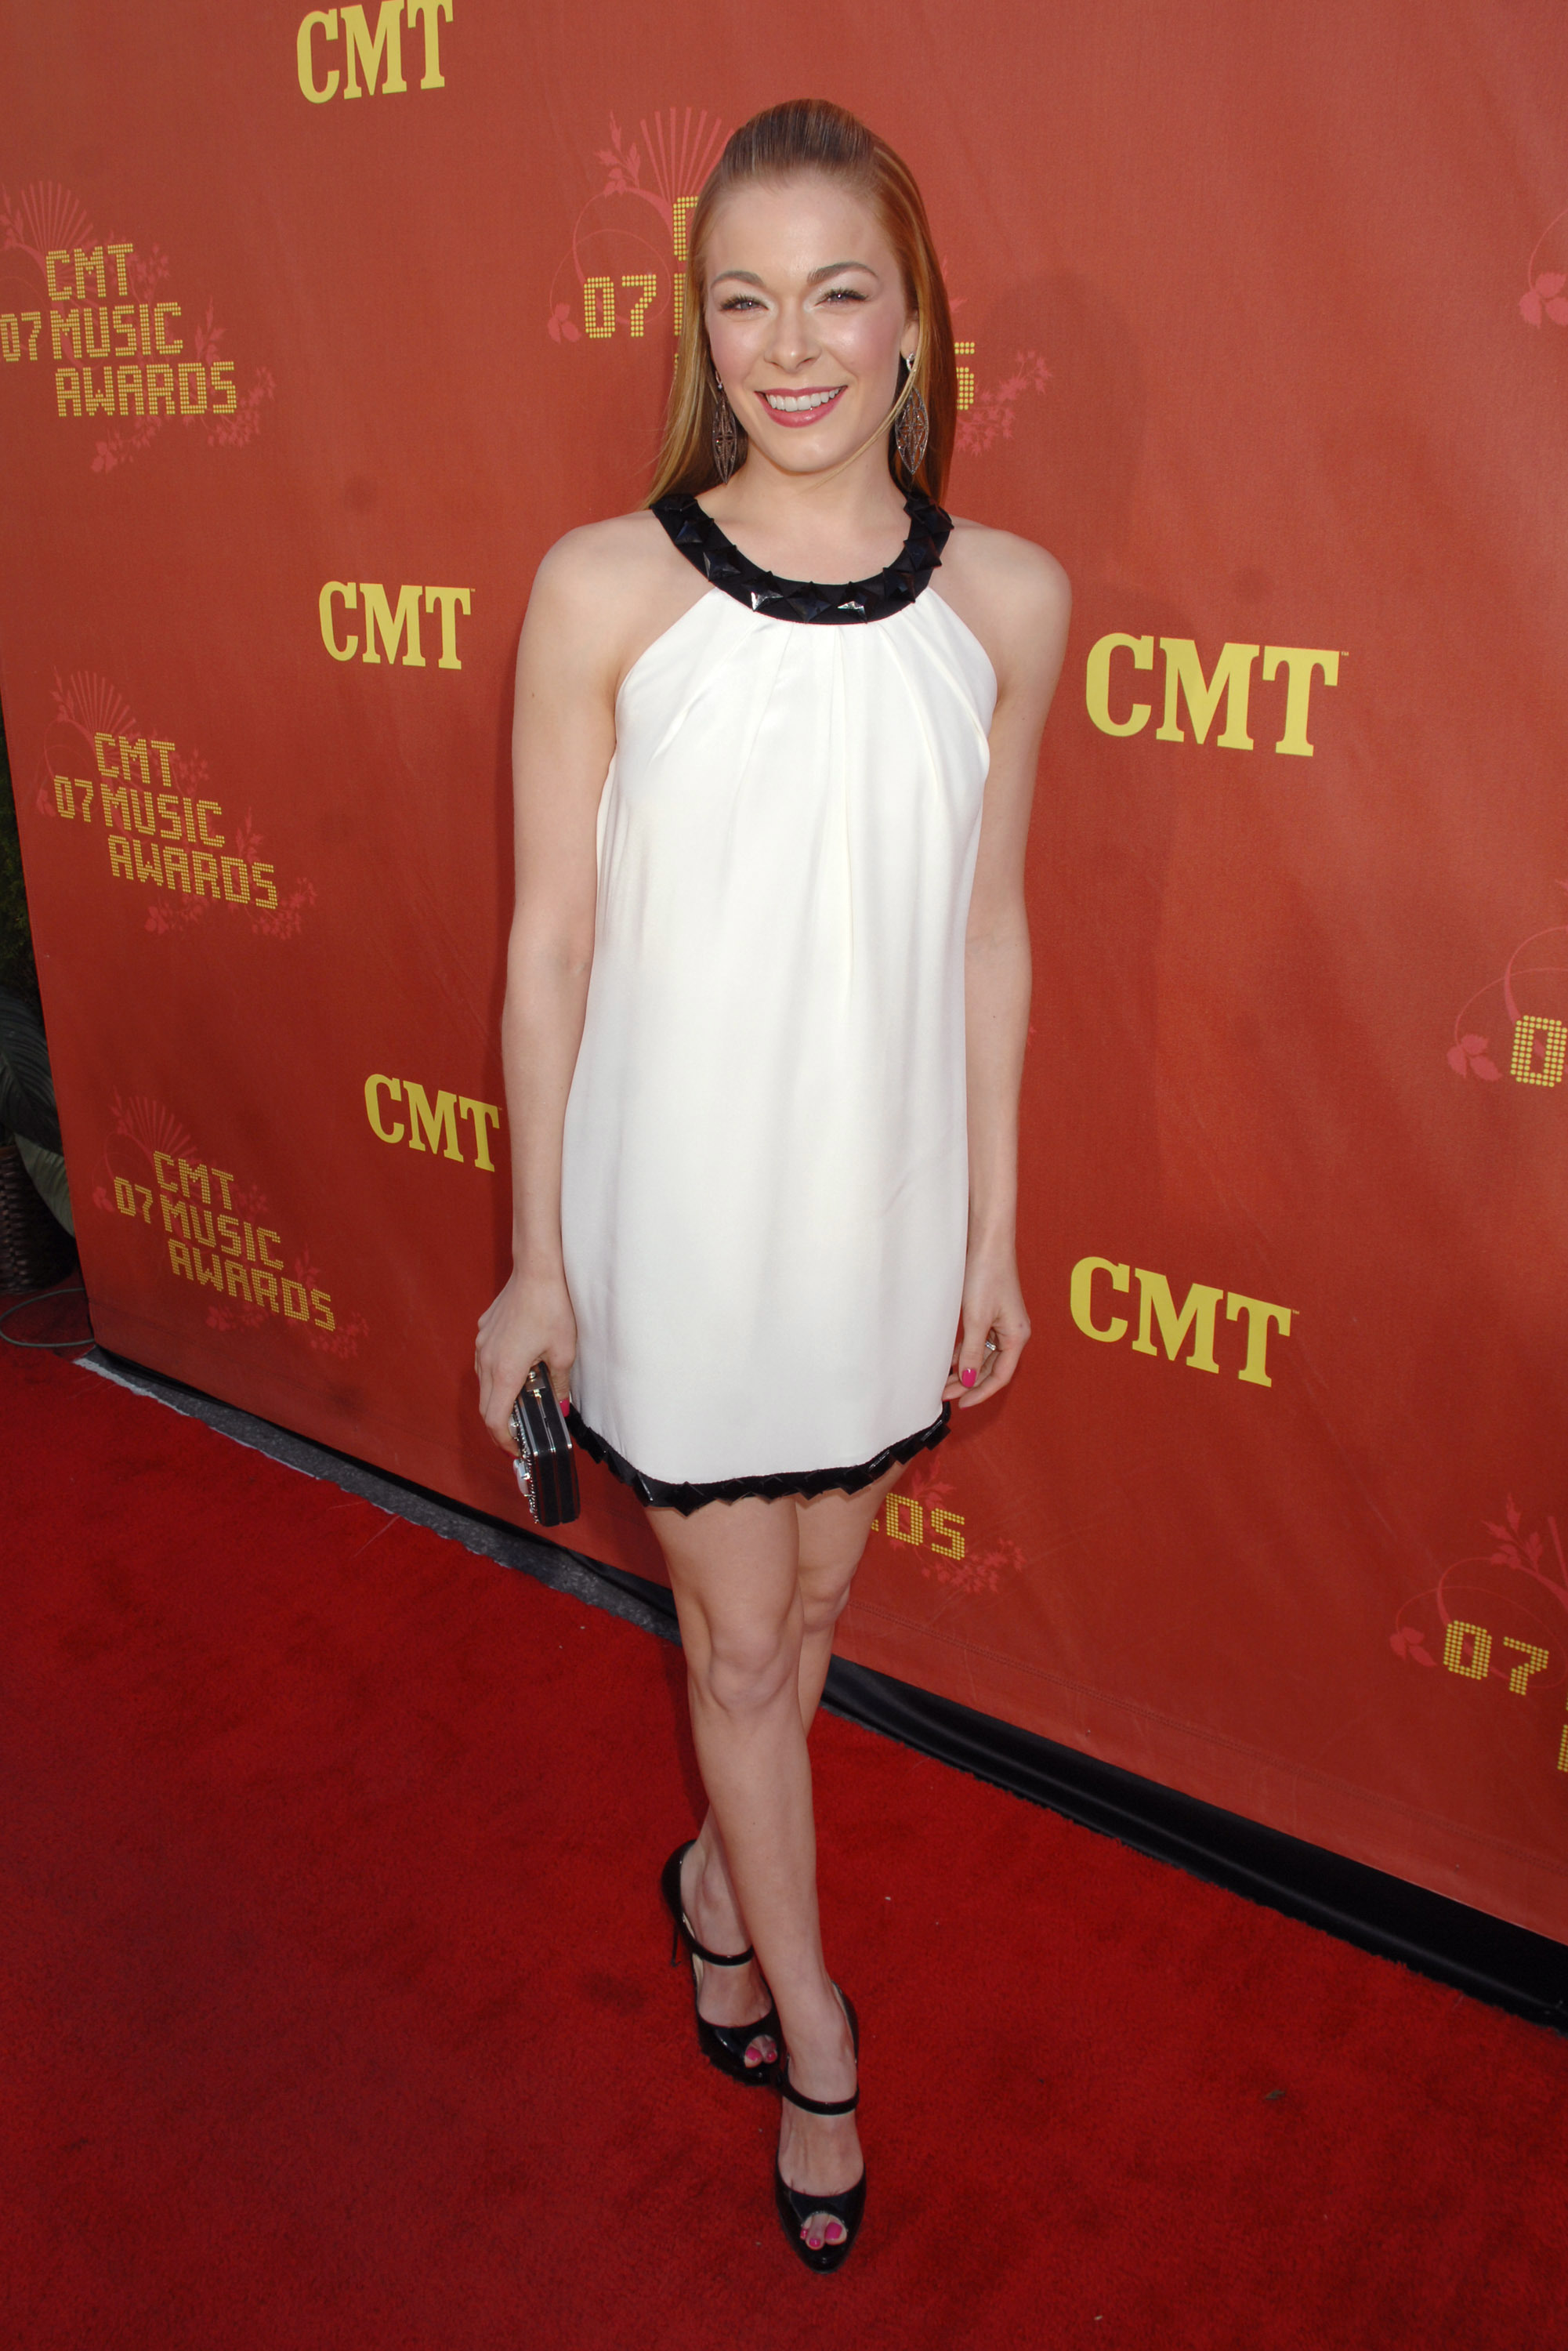 LeAnn Rimes attends the 2007 CMT Music Awards at the Curb Event Center at Belmont University in Nashville on April 16.